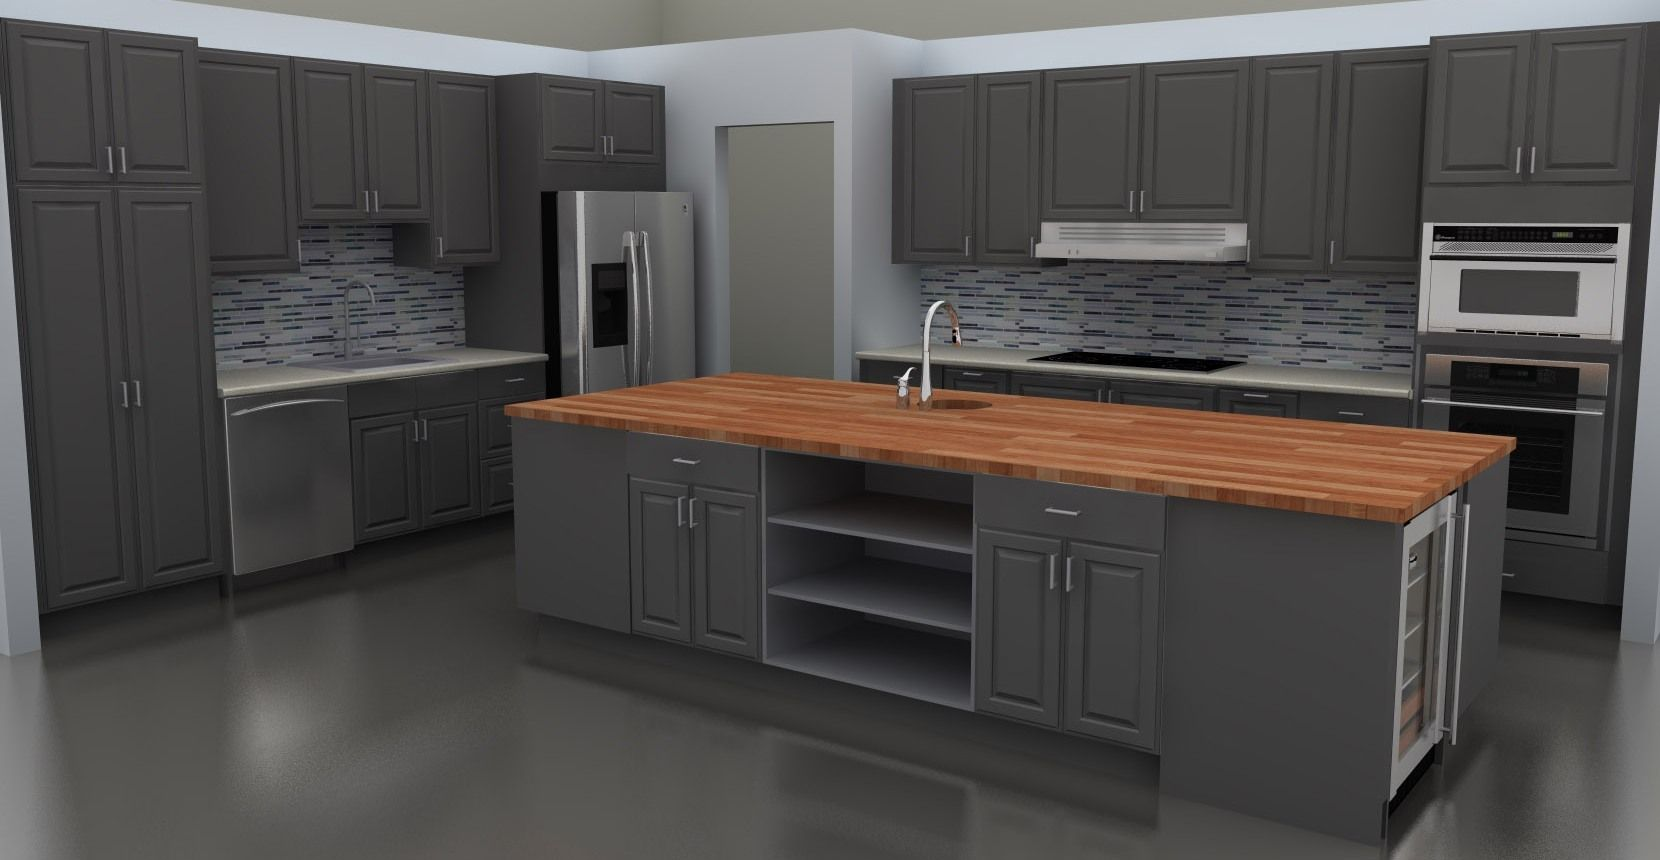 The Gorgeous Ikea Butcher Block Counter Looks Great At This Large Island Description From Inspiredkitchend Modern Grey Kitchen Grey Kitchen Grey Kitchen Floor